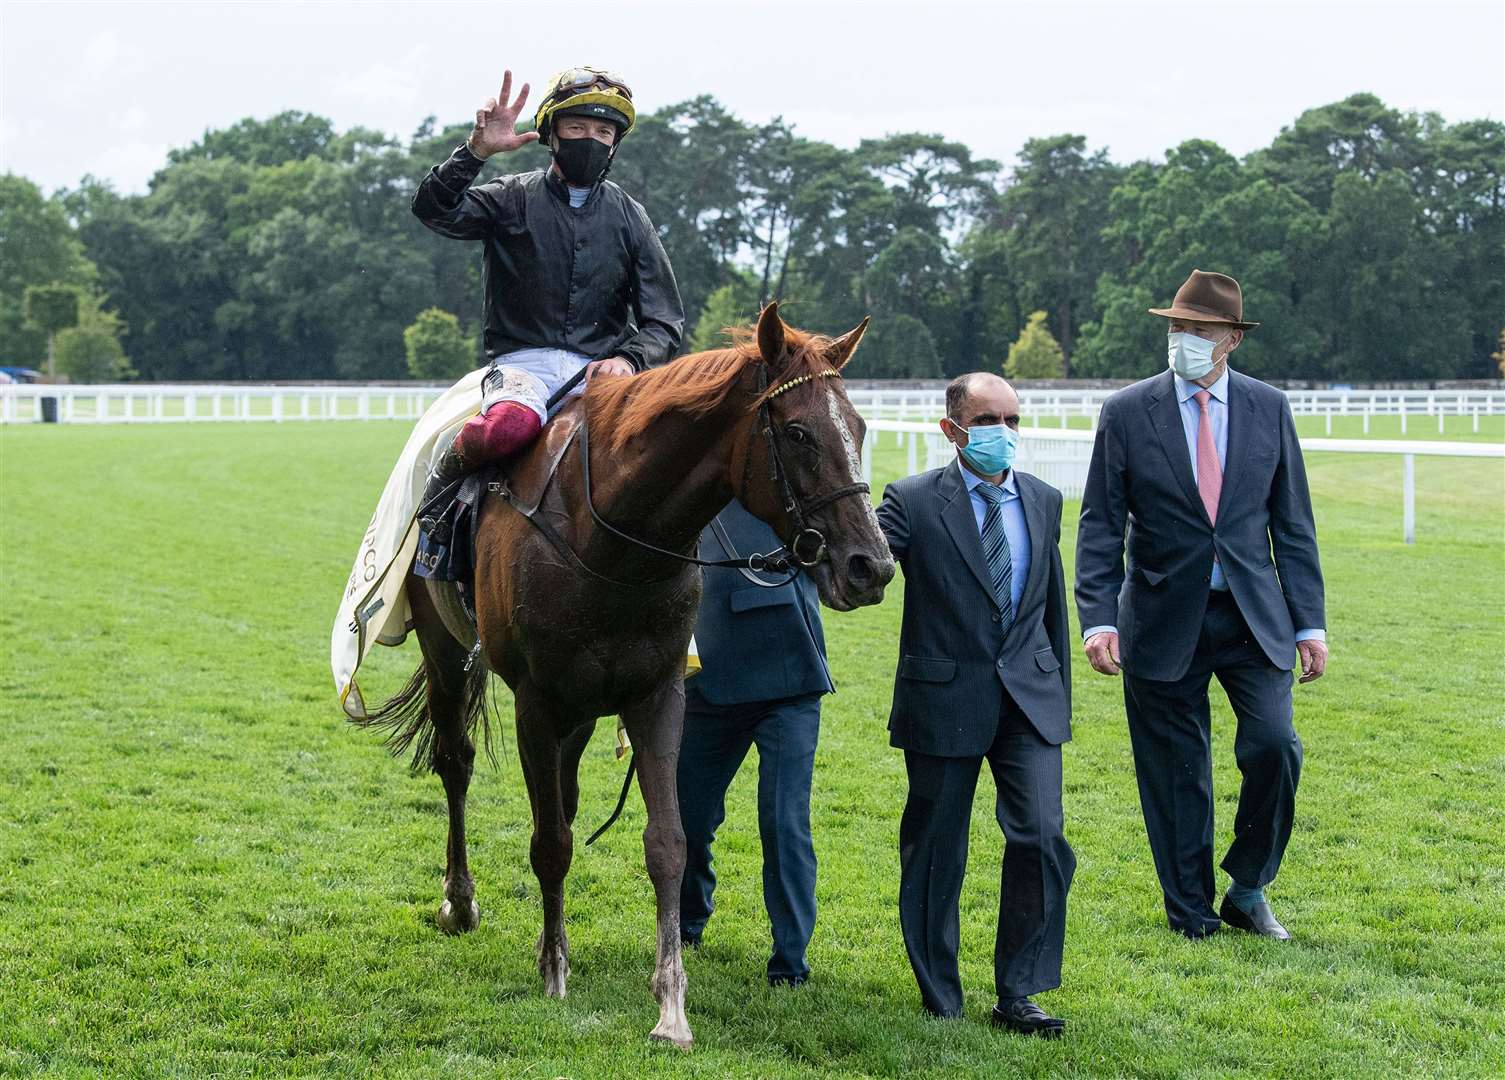 Stradivarius (Frankie Dettori) wins his third Gold Cup and walks back with trainer John Gosden (R).Royal Ascot 18.6.20 Pic: Edward Whitaker/ Racing Post. (37030563)